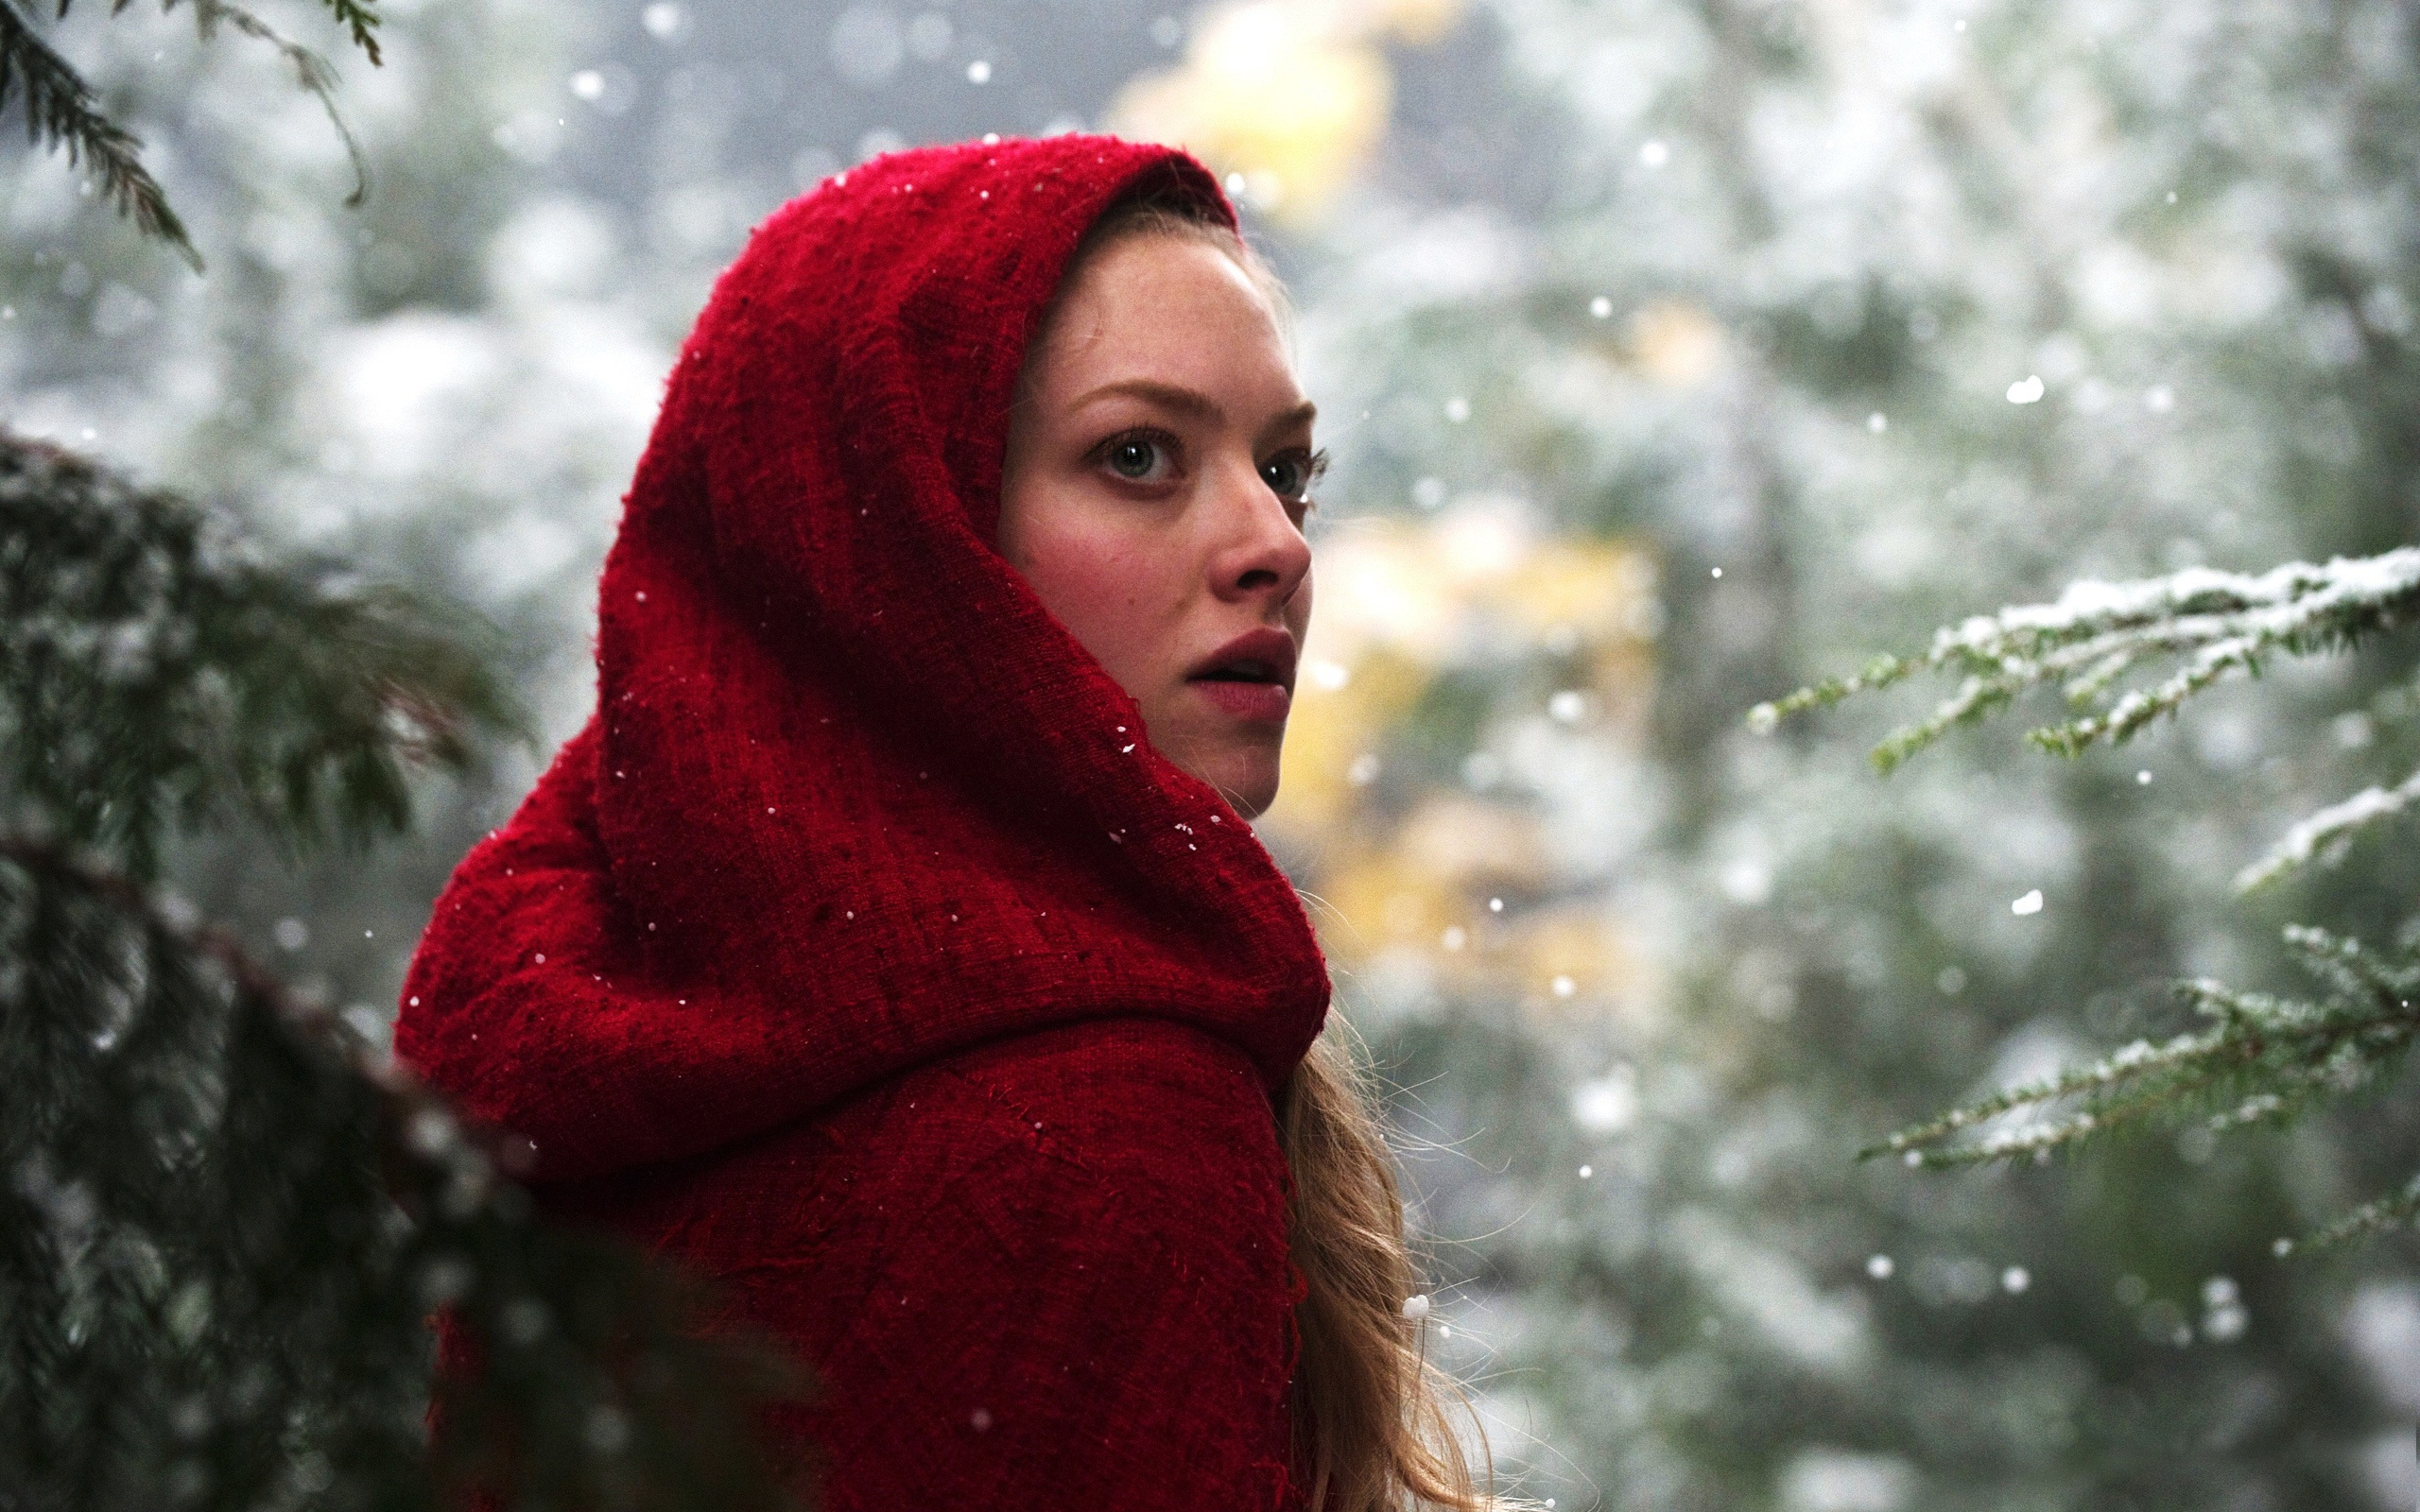 Amanda Seyfried in Red Riding Hood 1425.69 Kb